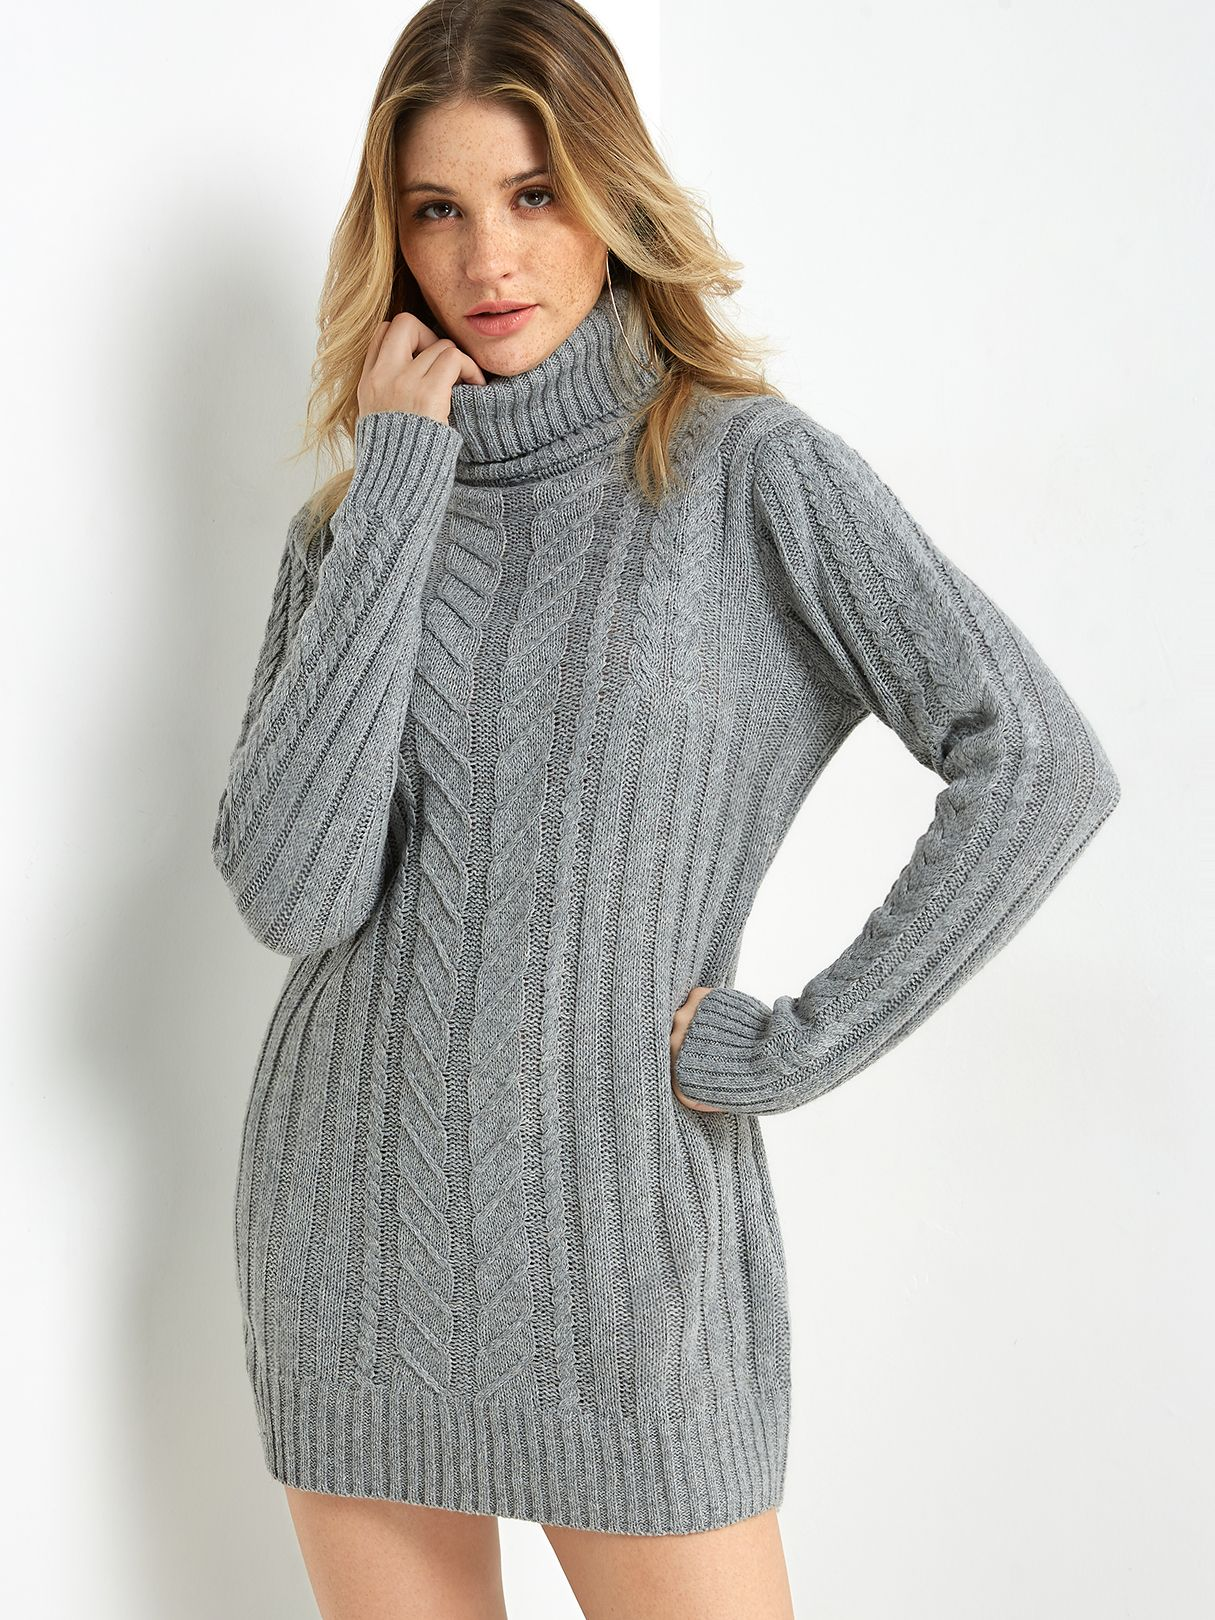 94b818e30a Grey Cable Knit High Neck Long Sleeves Sweater Dress - US 23.95 in ...